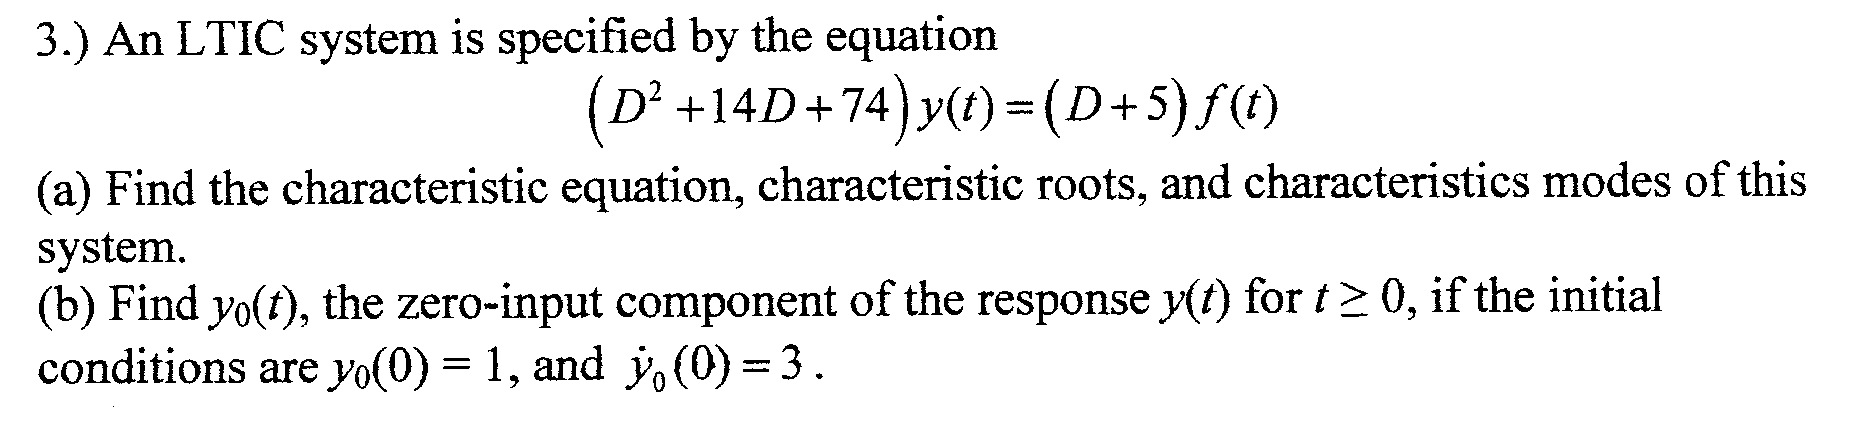 An LTIC system is specified by the equation (D2 +